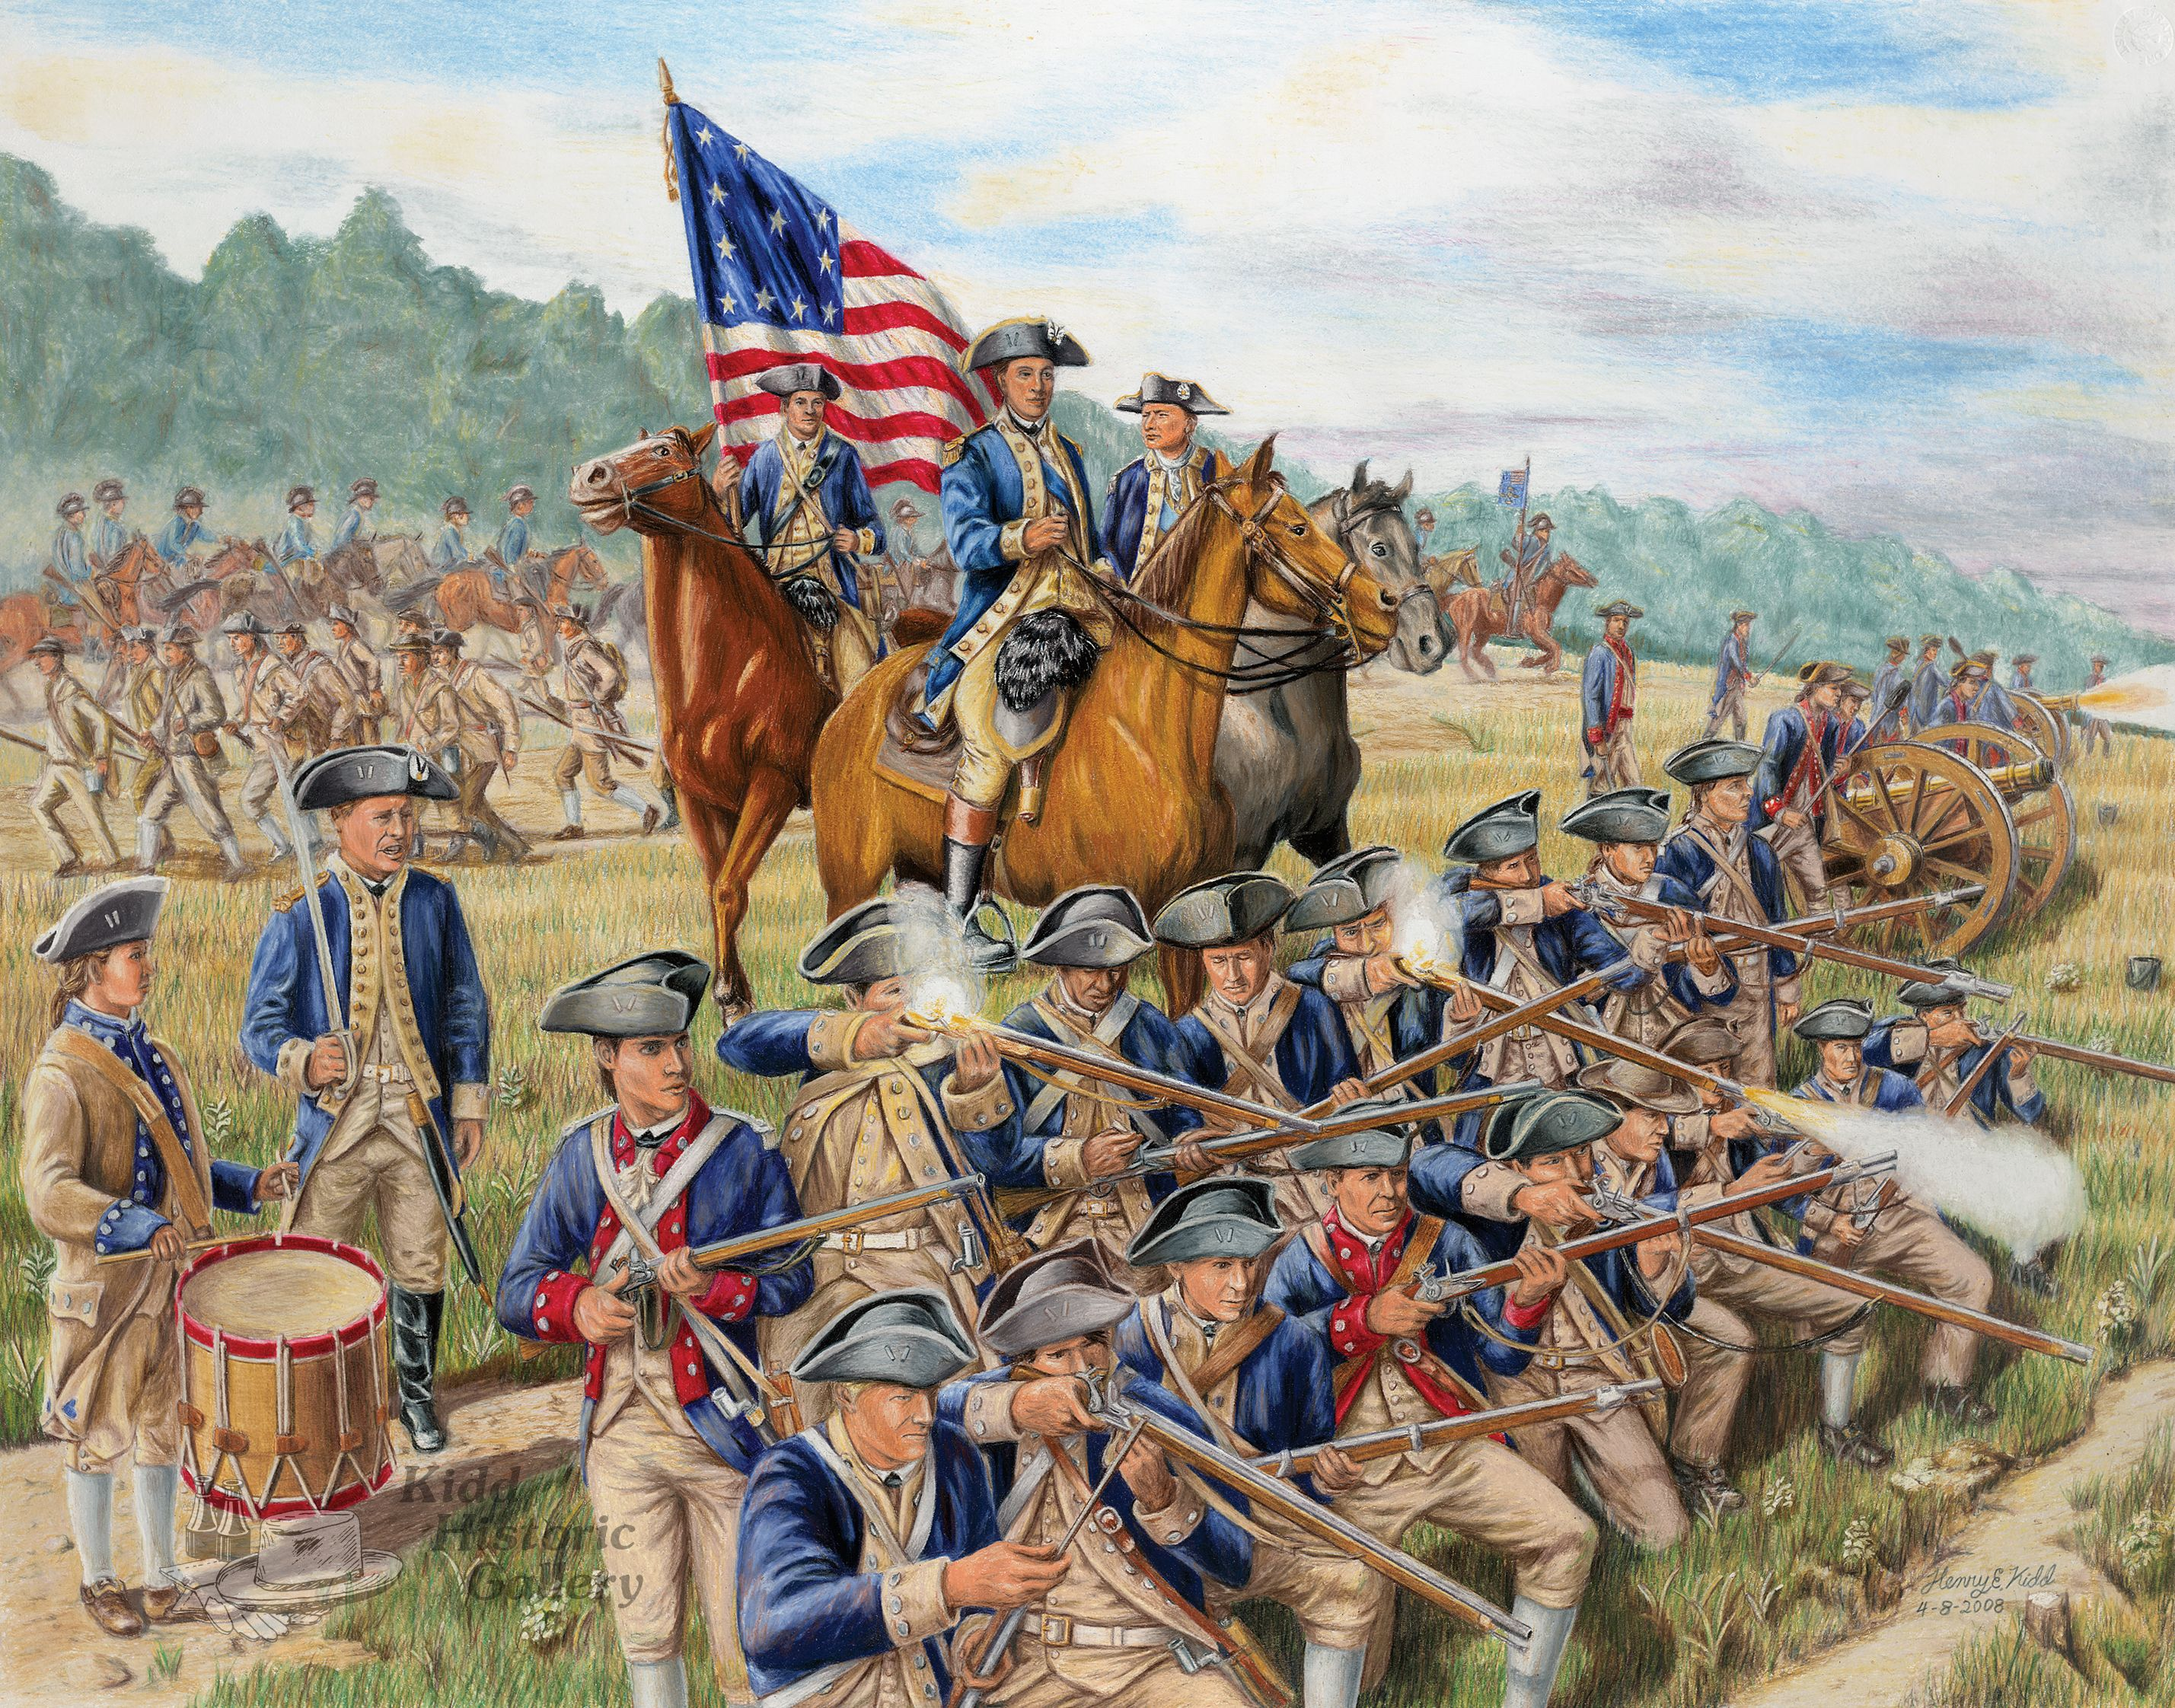 americans revolution and the british colonial war essay The american revolution, which was the strive of the colonial america to obtain independence the colonies wanted to separate from the british because of the unfair demands and taxes they following the french and indian war, the british had to take action in order to restore what was lost.